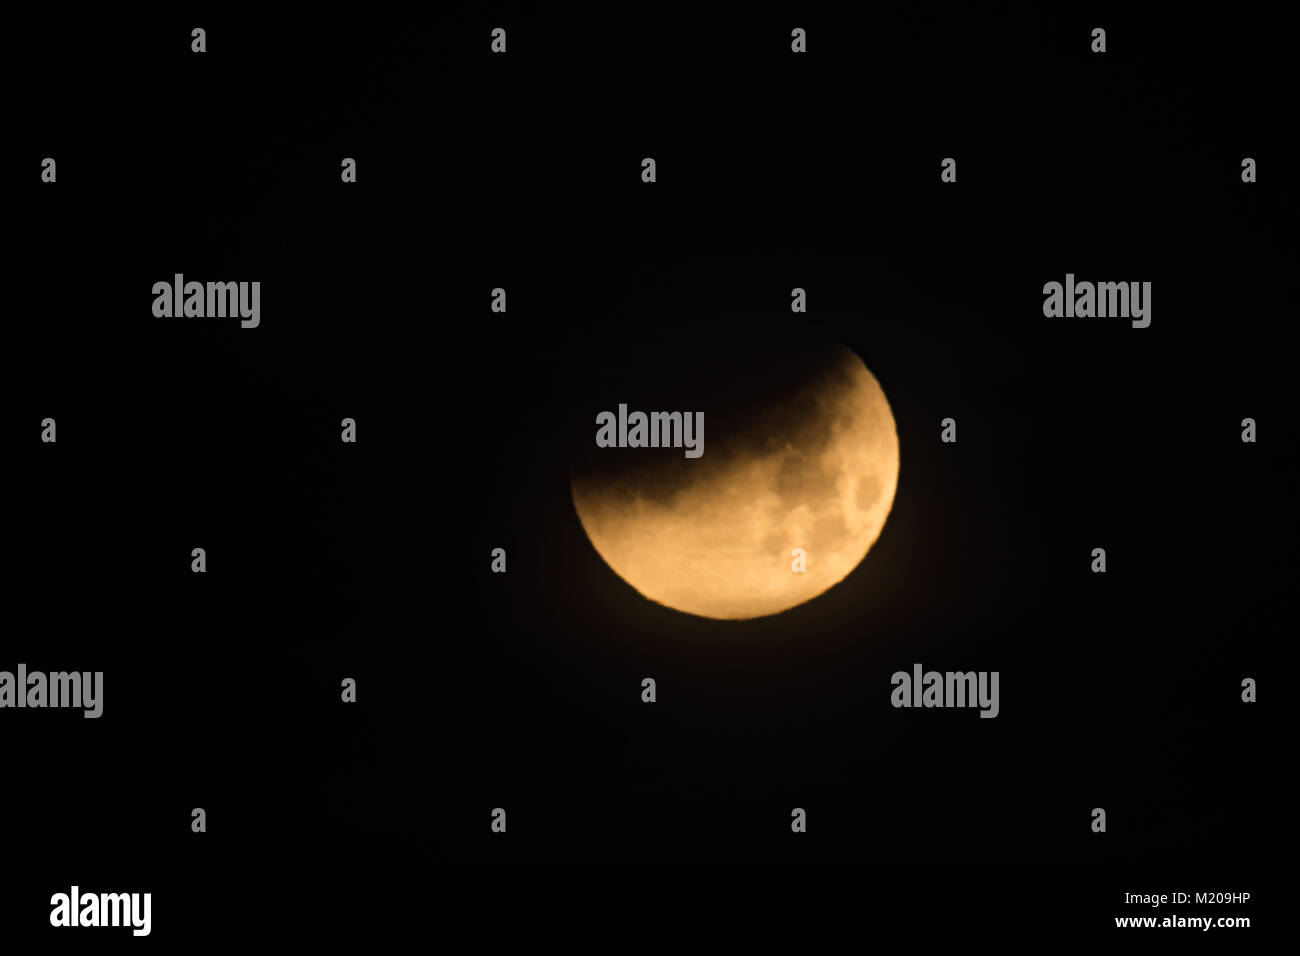 Lunar Eclipse, 31 January 2018, Knoxville, TN, USA - Stock Image